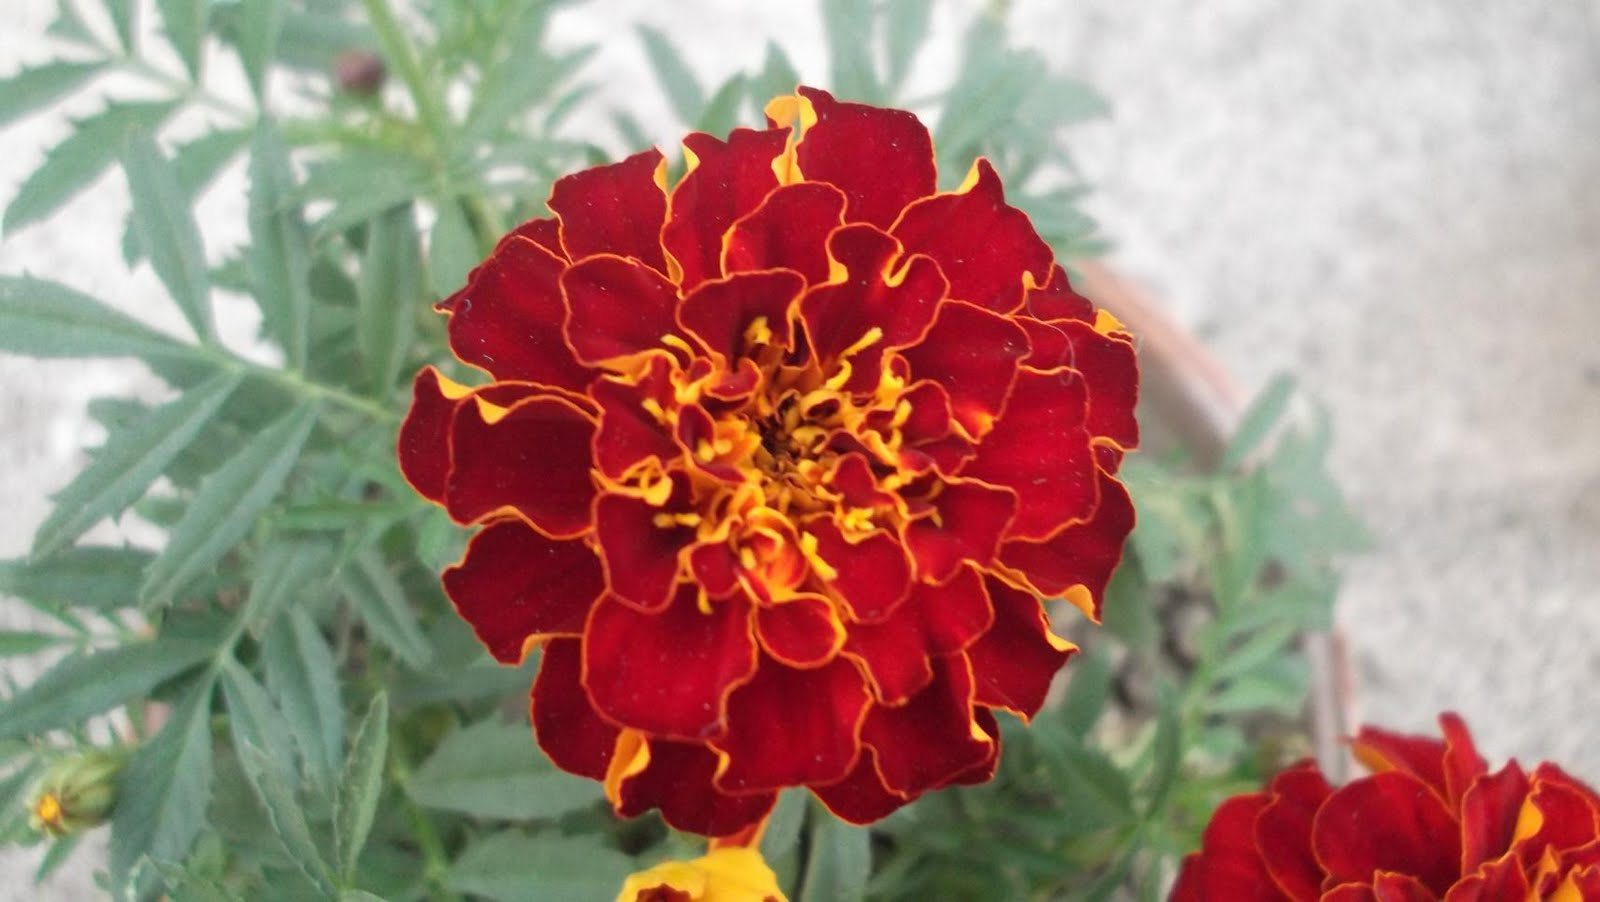 marigold flowers Plant a garden of sunshine with marigolds these cheery annual flowers are a snap to grow, offering nonstop blooms all summer long a six pack of annuals is great way to add bold, seasonal color to your container combinations and landscape flower beds.